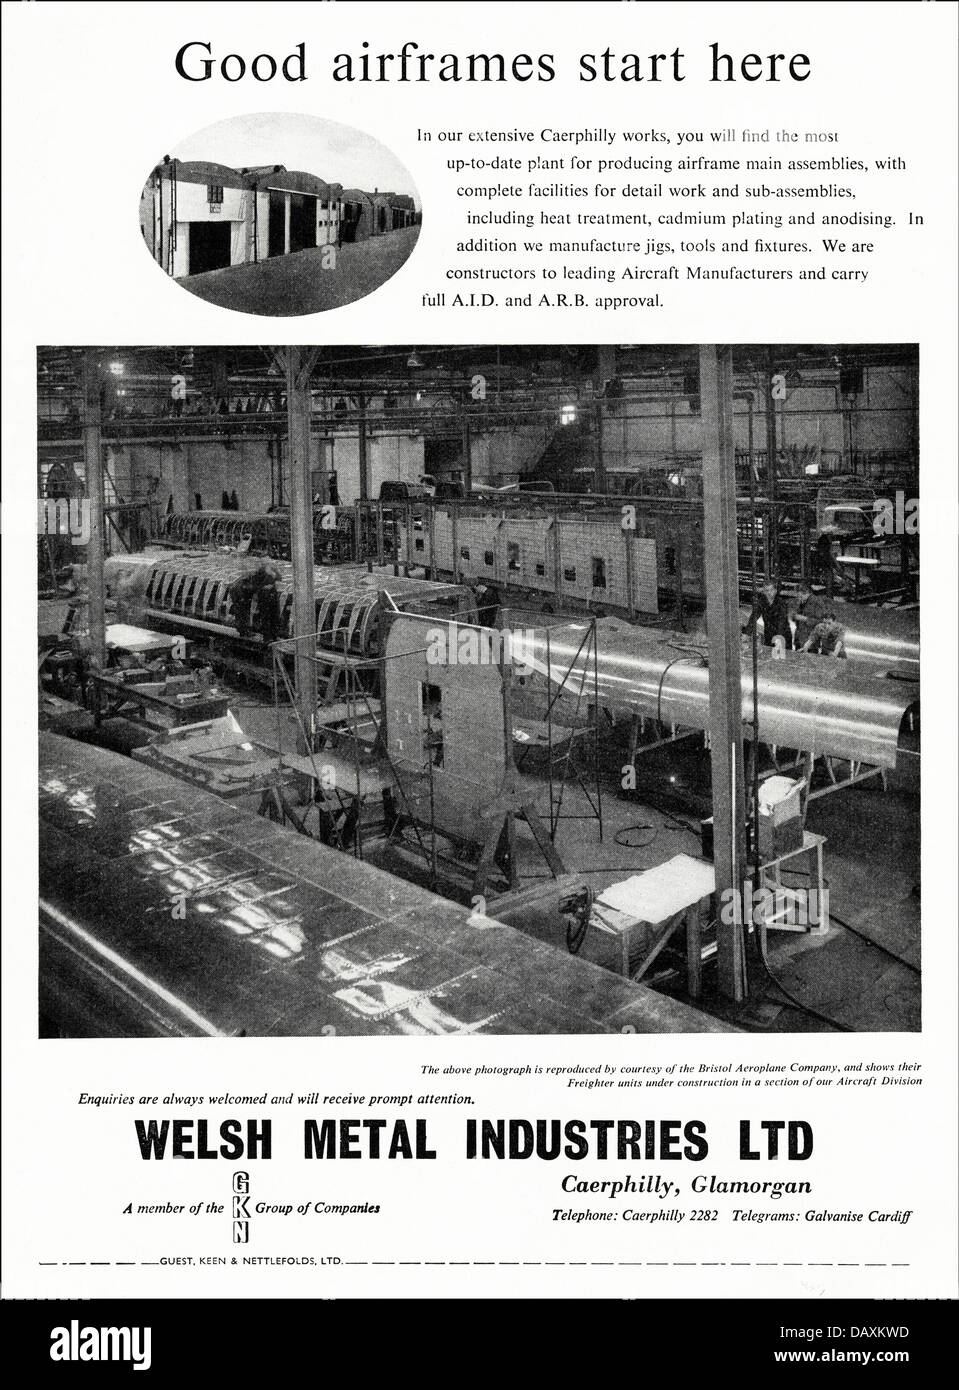 Advert for airframe assembly by Welsh Metal Industries Limited Caerphilly Glamorgan South Wales UK suppliers to - Stock Image